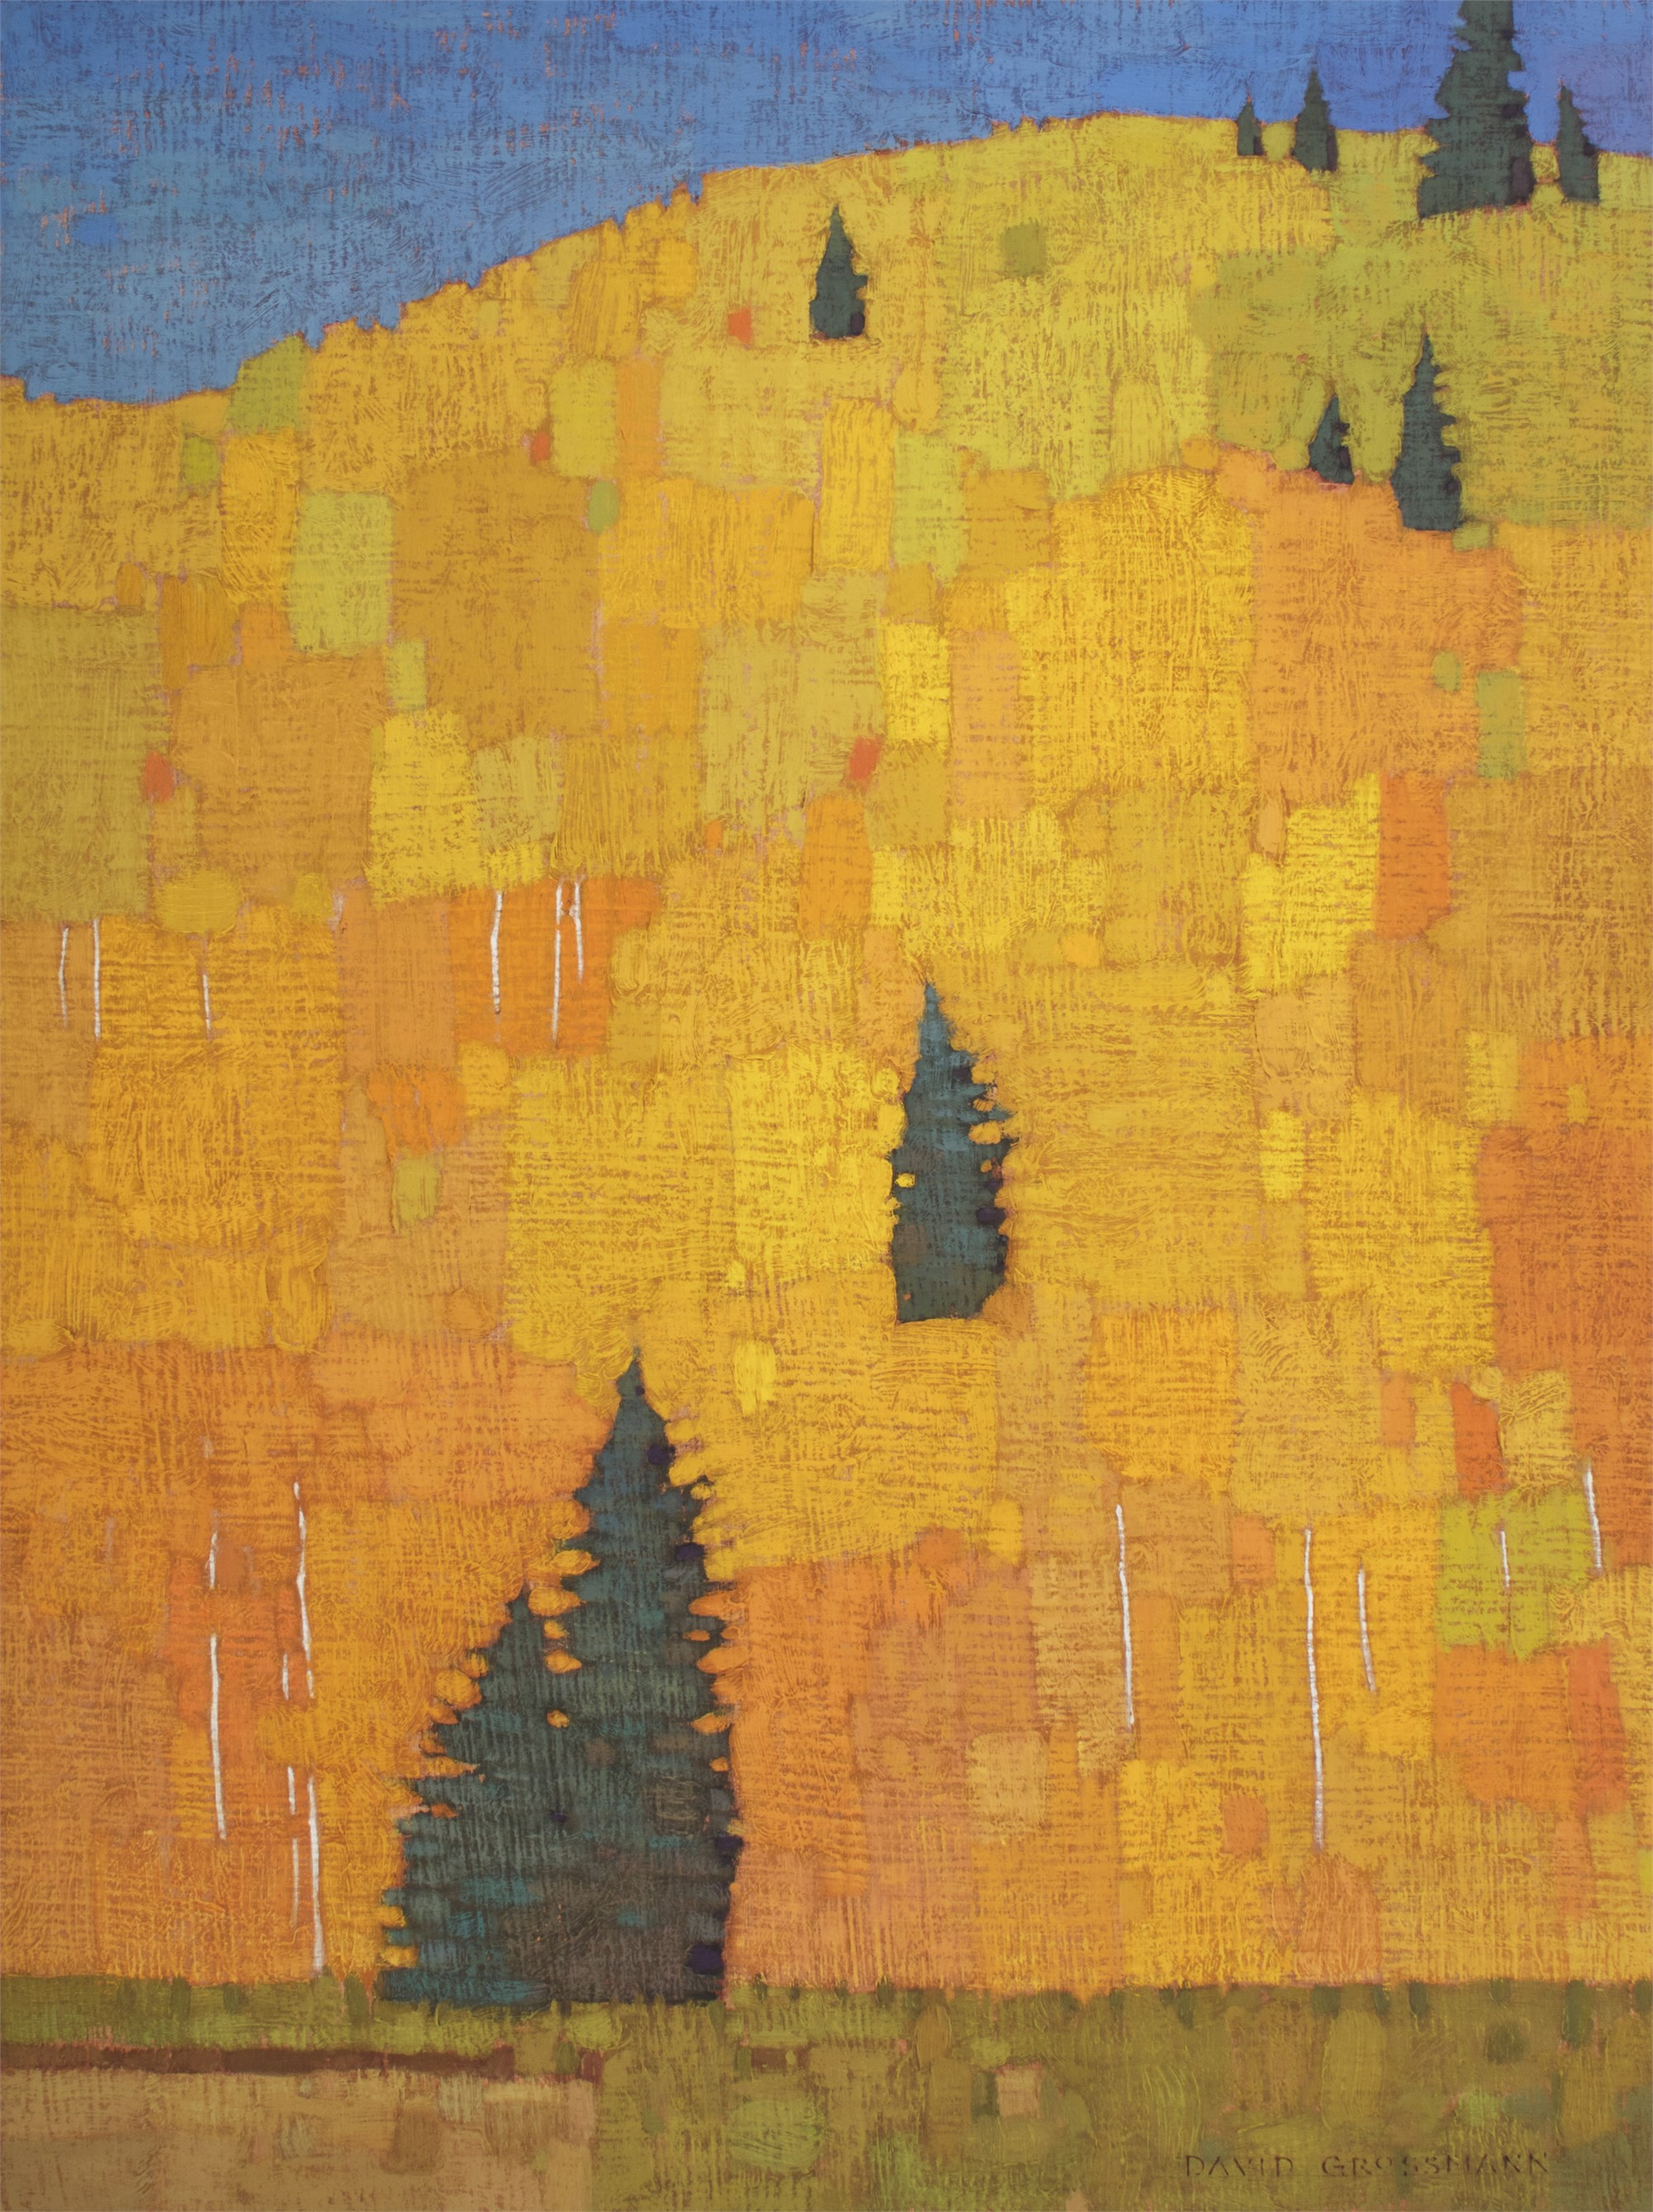 Scattered Pines and Aspen Patchwork by David Grossmann